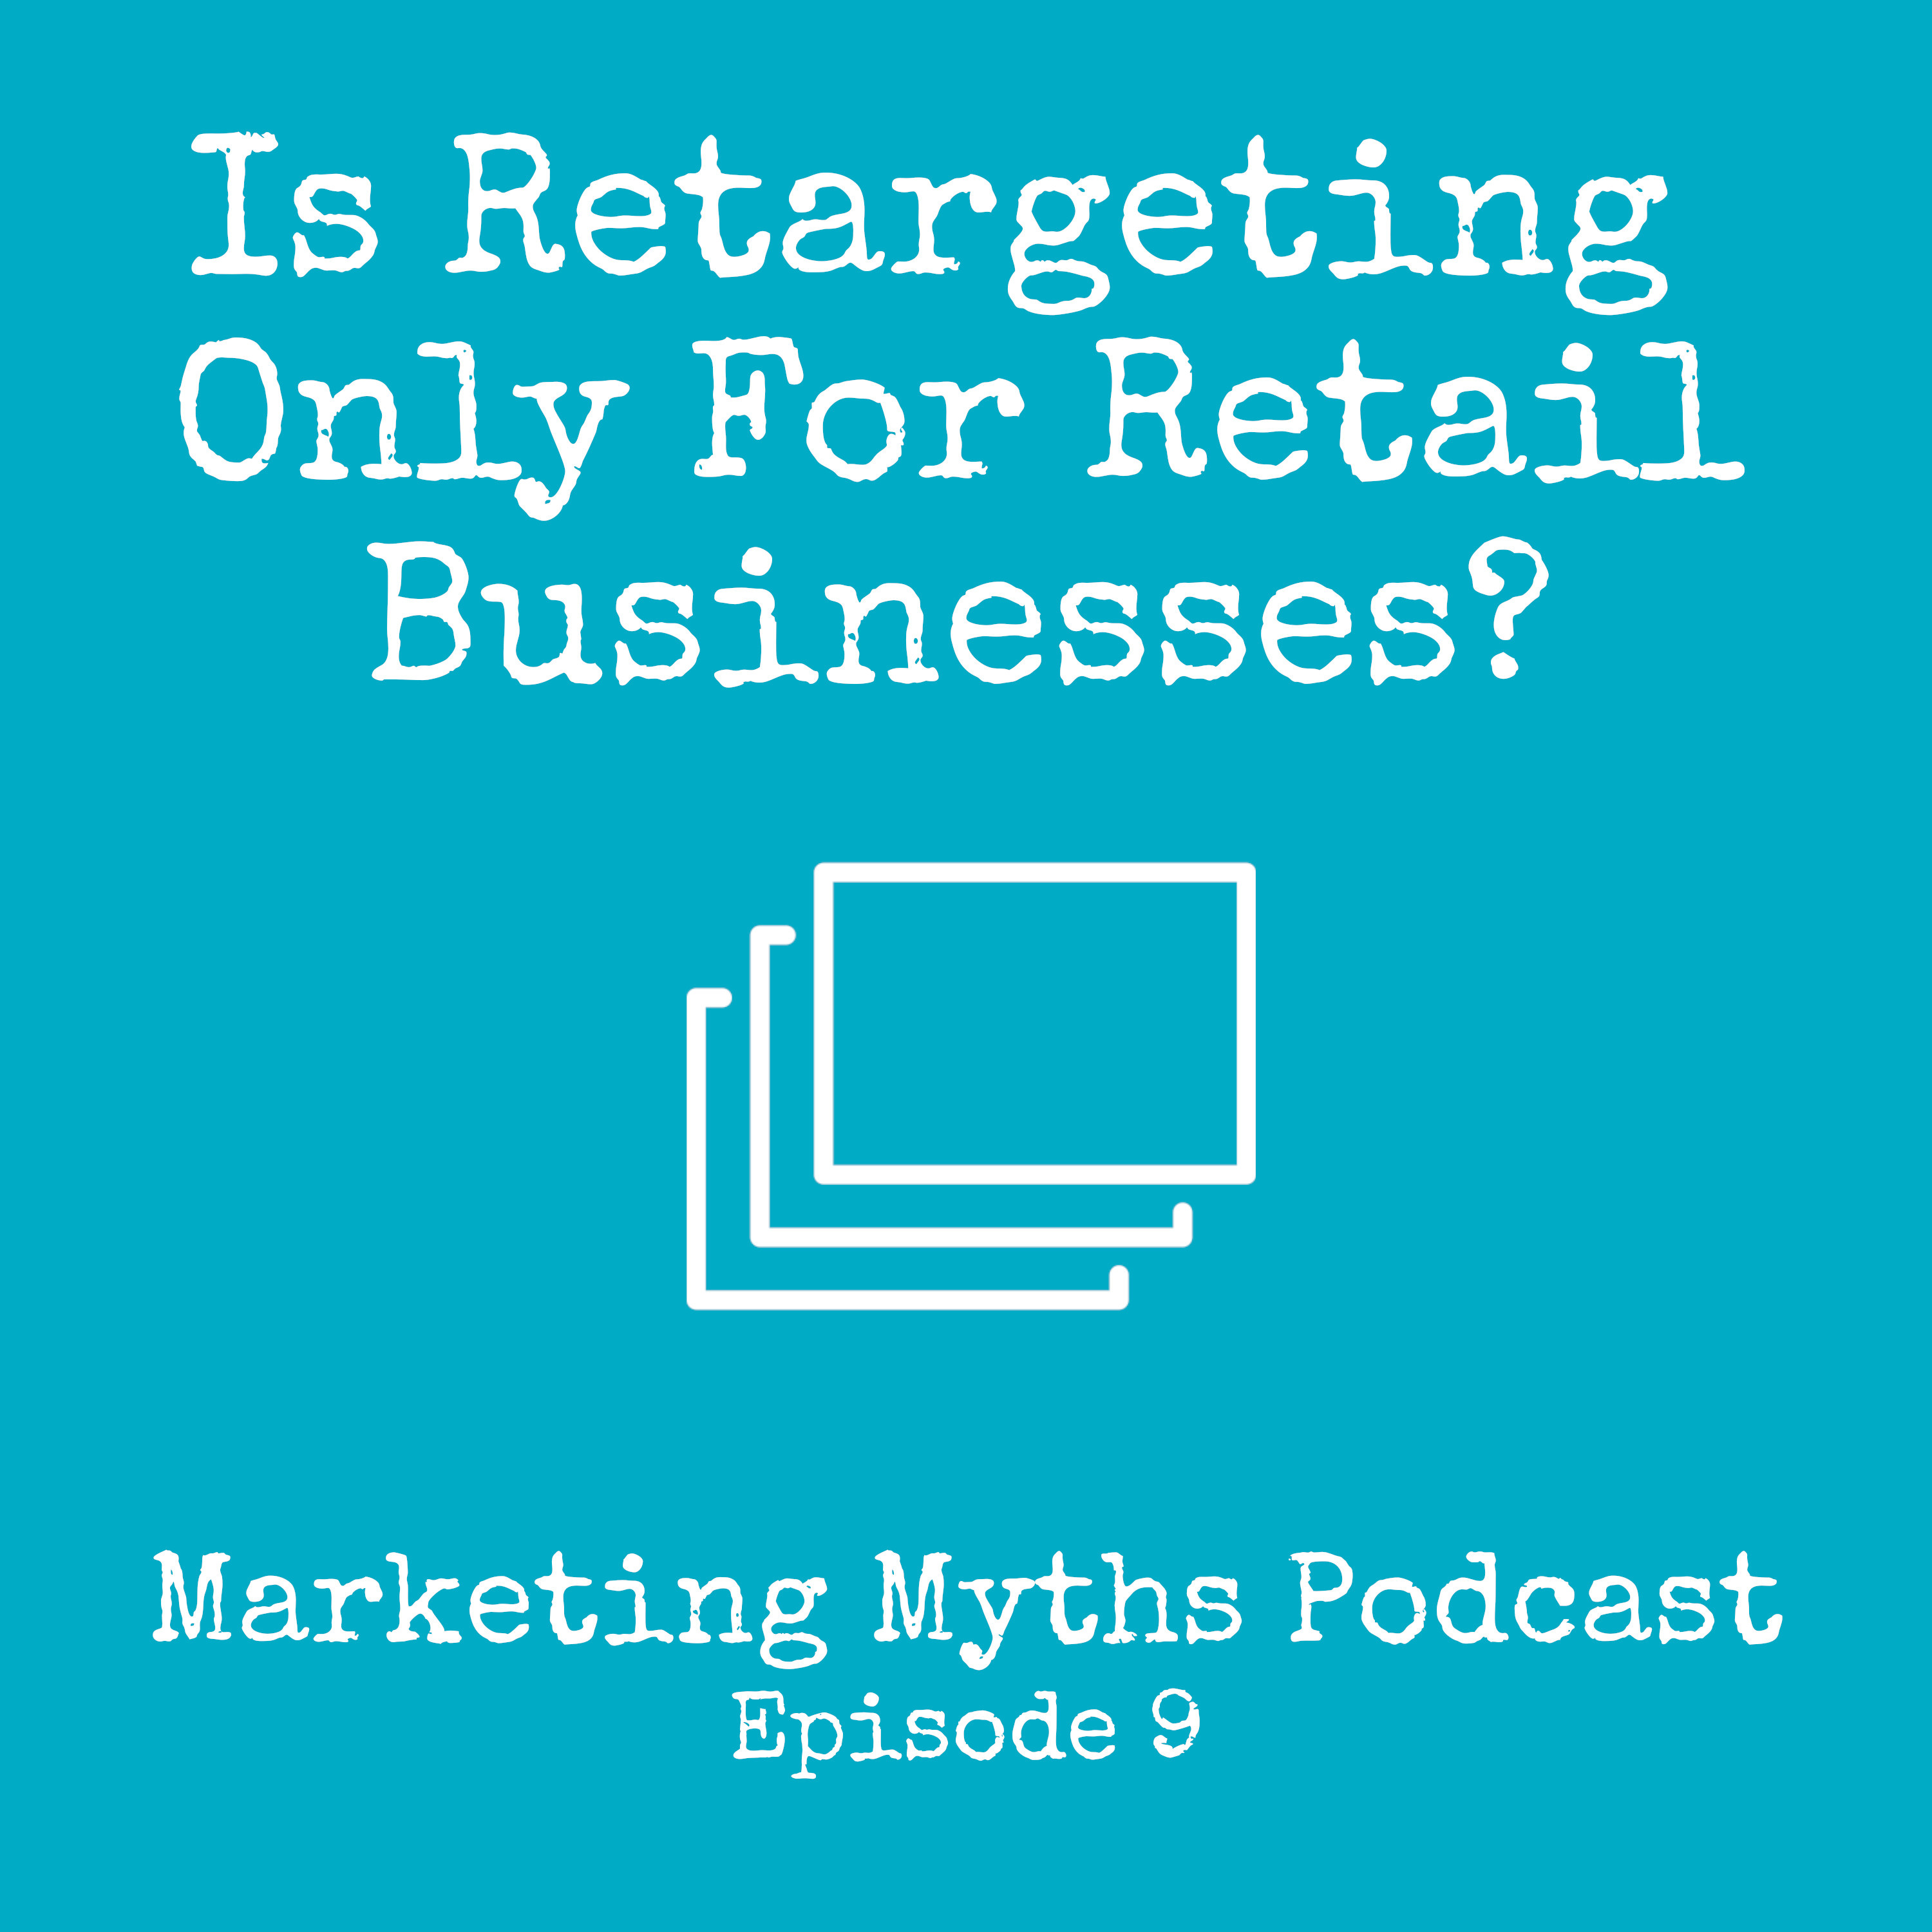 Is Retargeting Only for Retail Businesses?